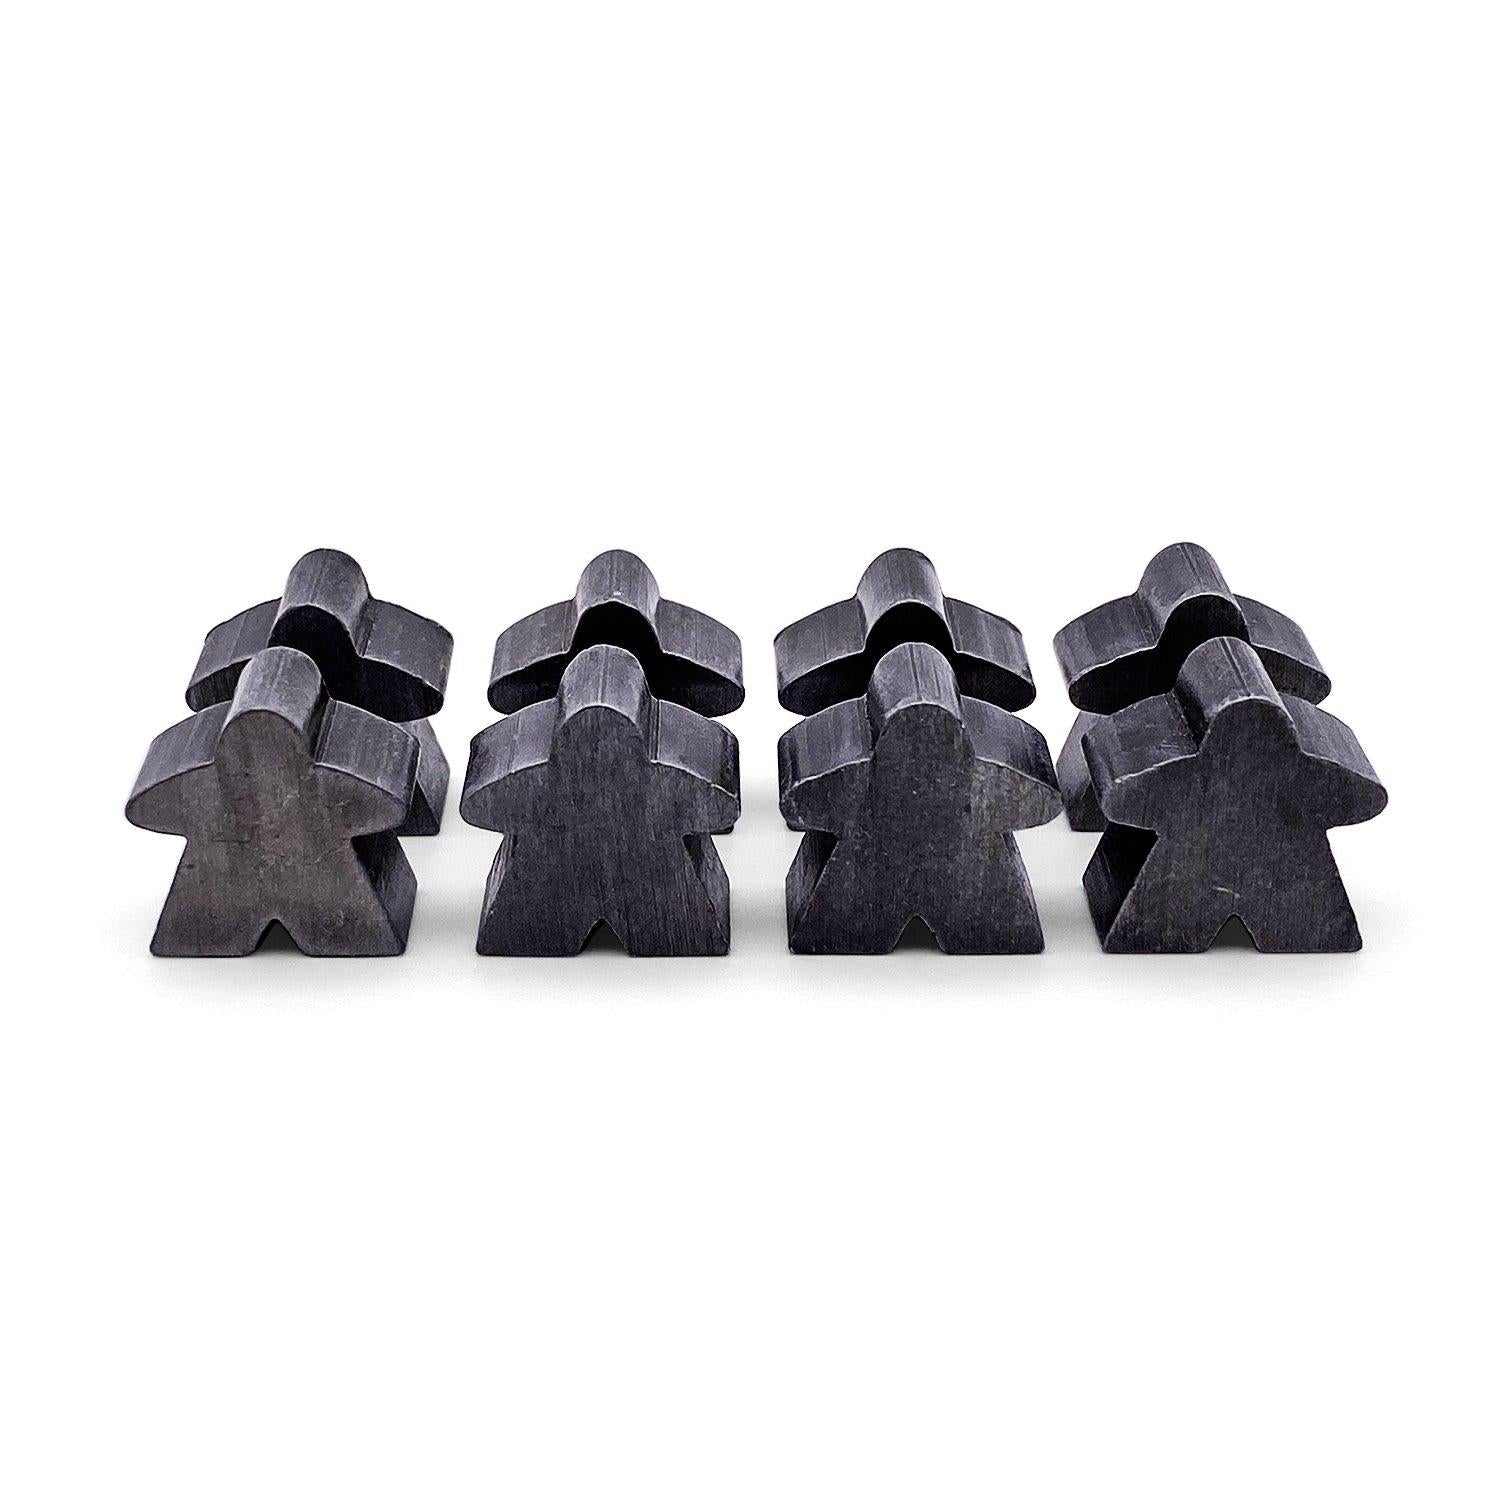 8 Pack of Antique Silver Metal Meeples by Norse Foundry